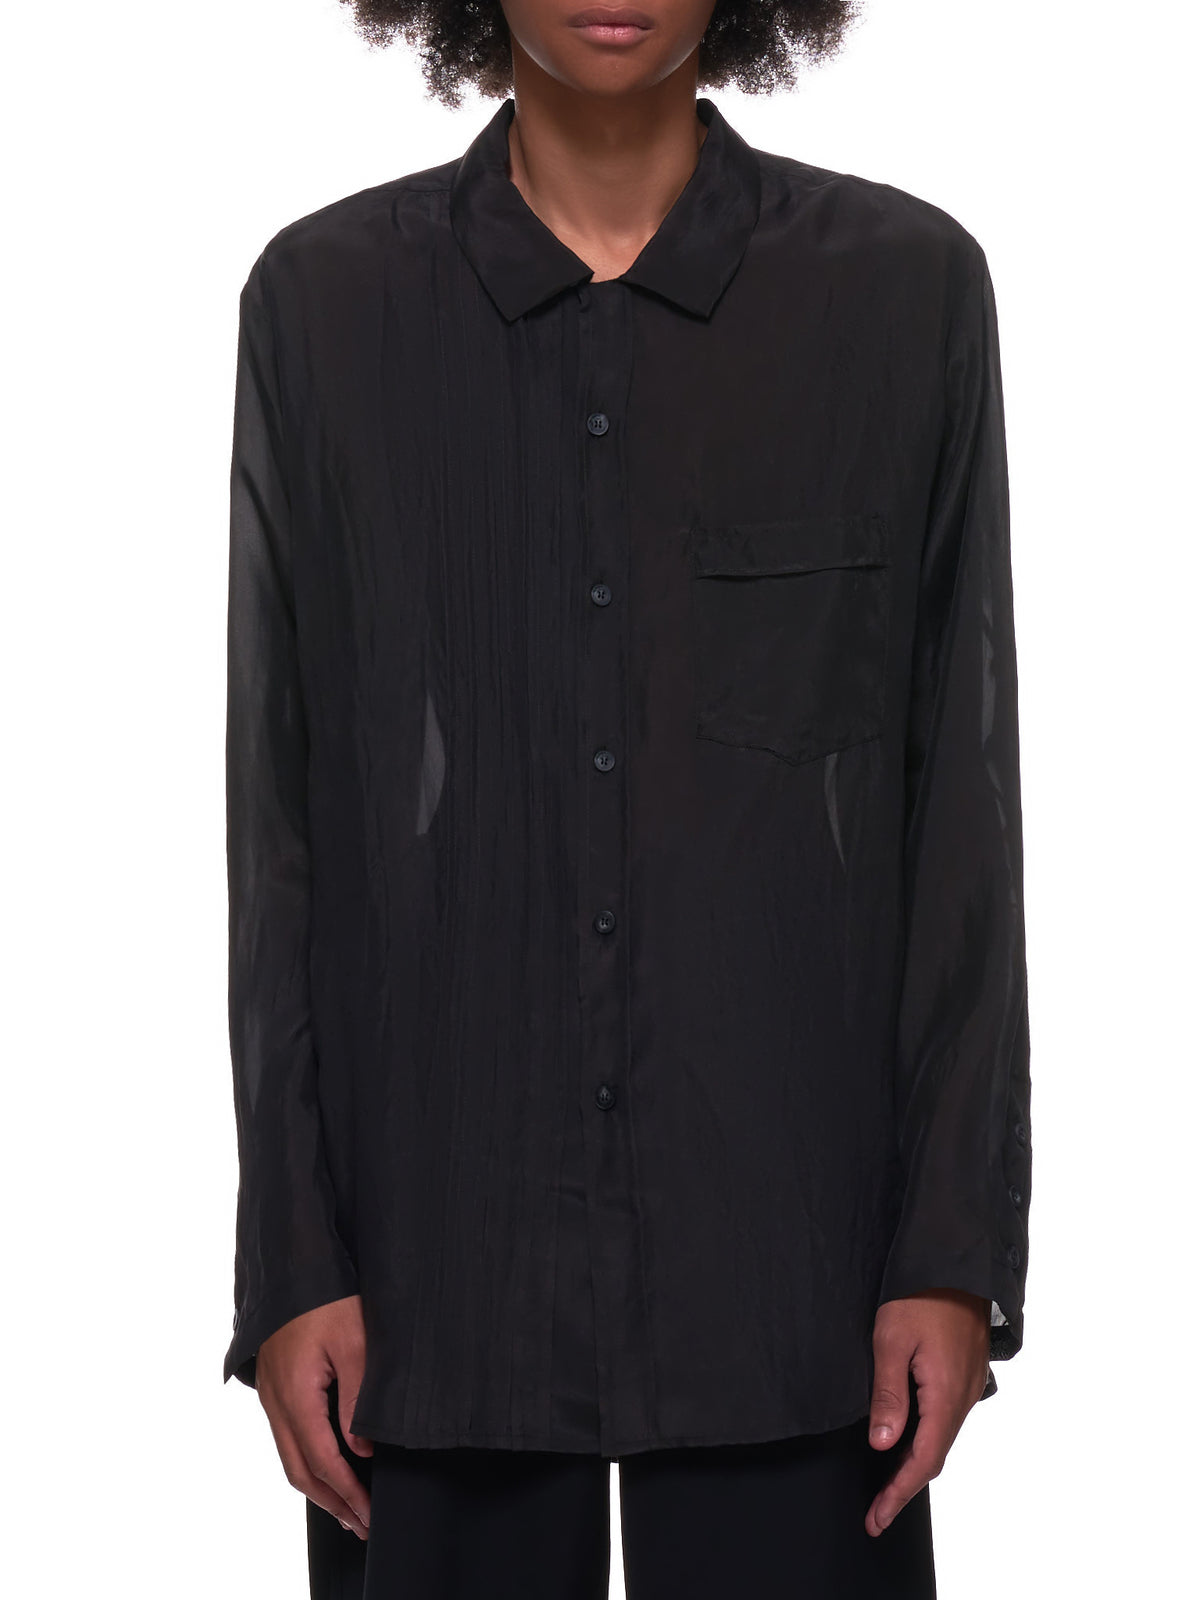 Light Evening Shirt (210851M-CHARCOAL)